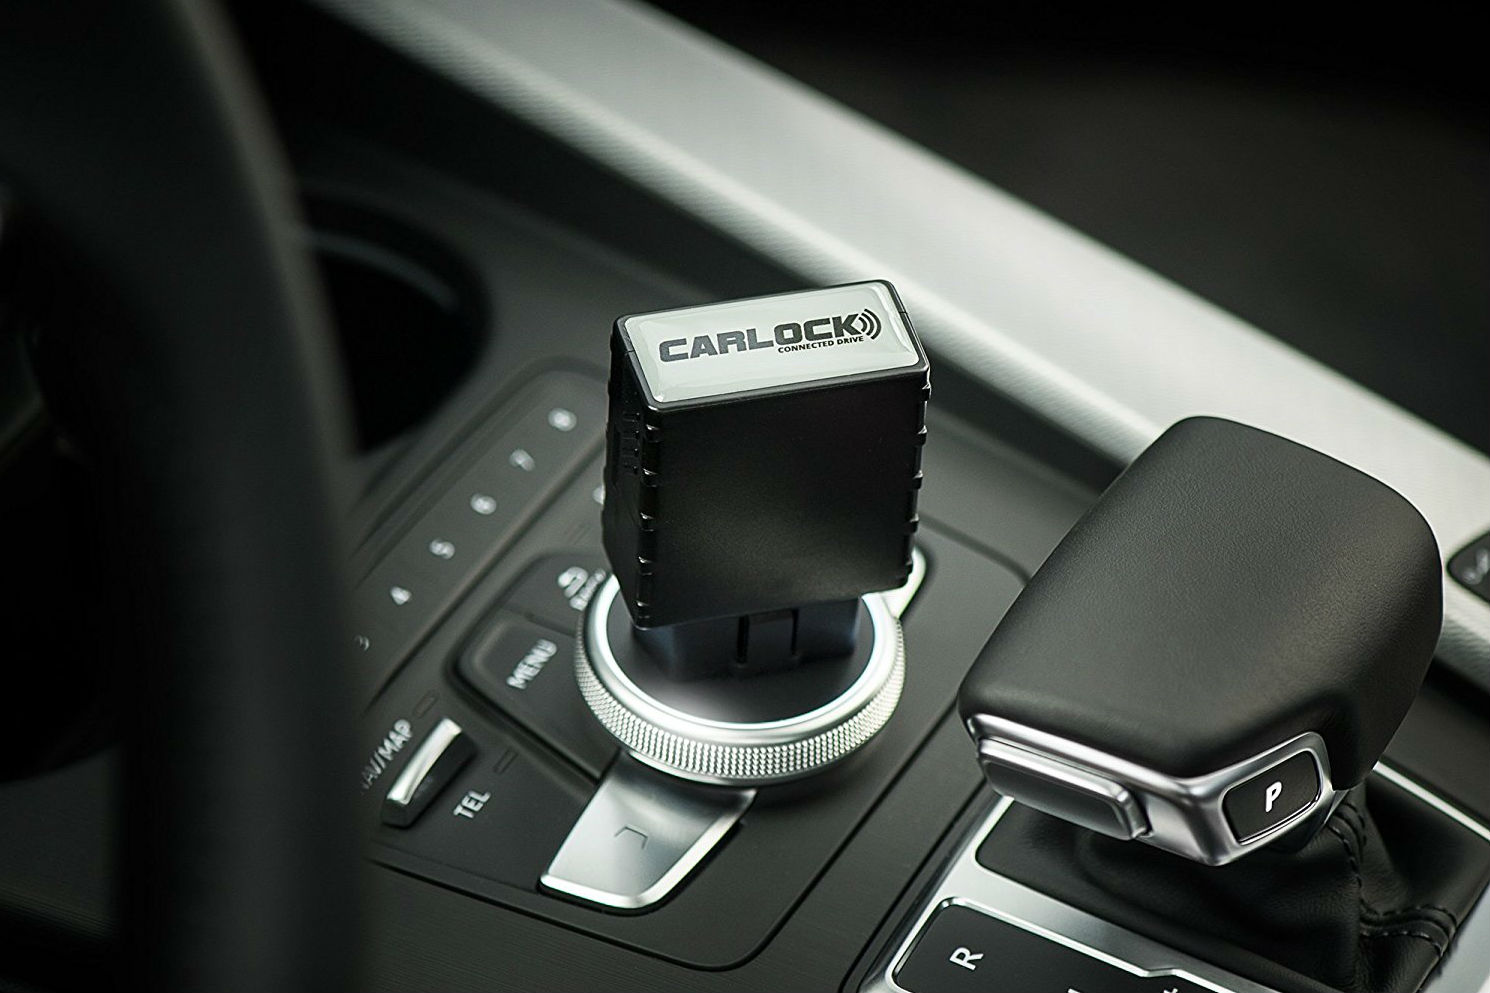 Tracking Devices For Cars Best Buy >> The Best Anti-Theft Devices for Cars | Digital Trends